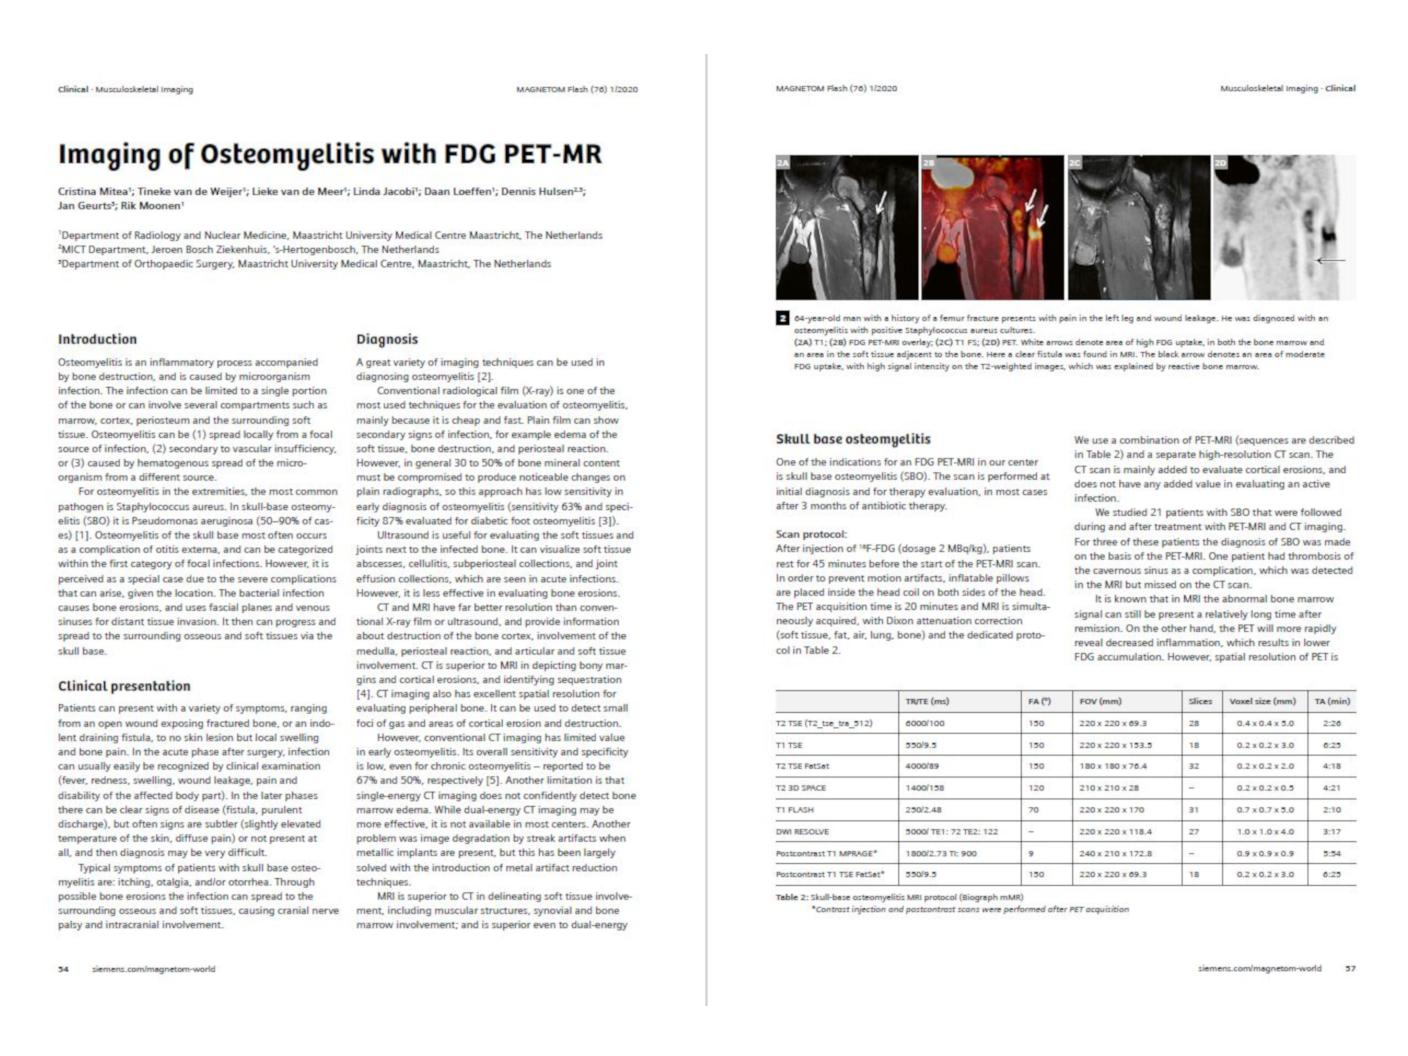 preview of the article Imaging of Osteomyelitis with FDG PET-MR